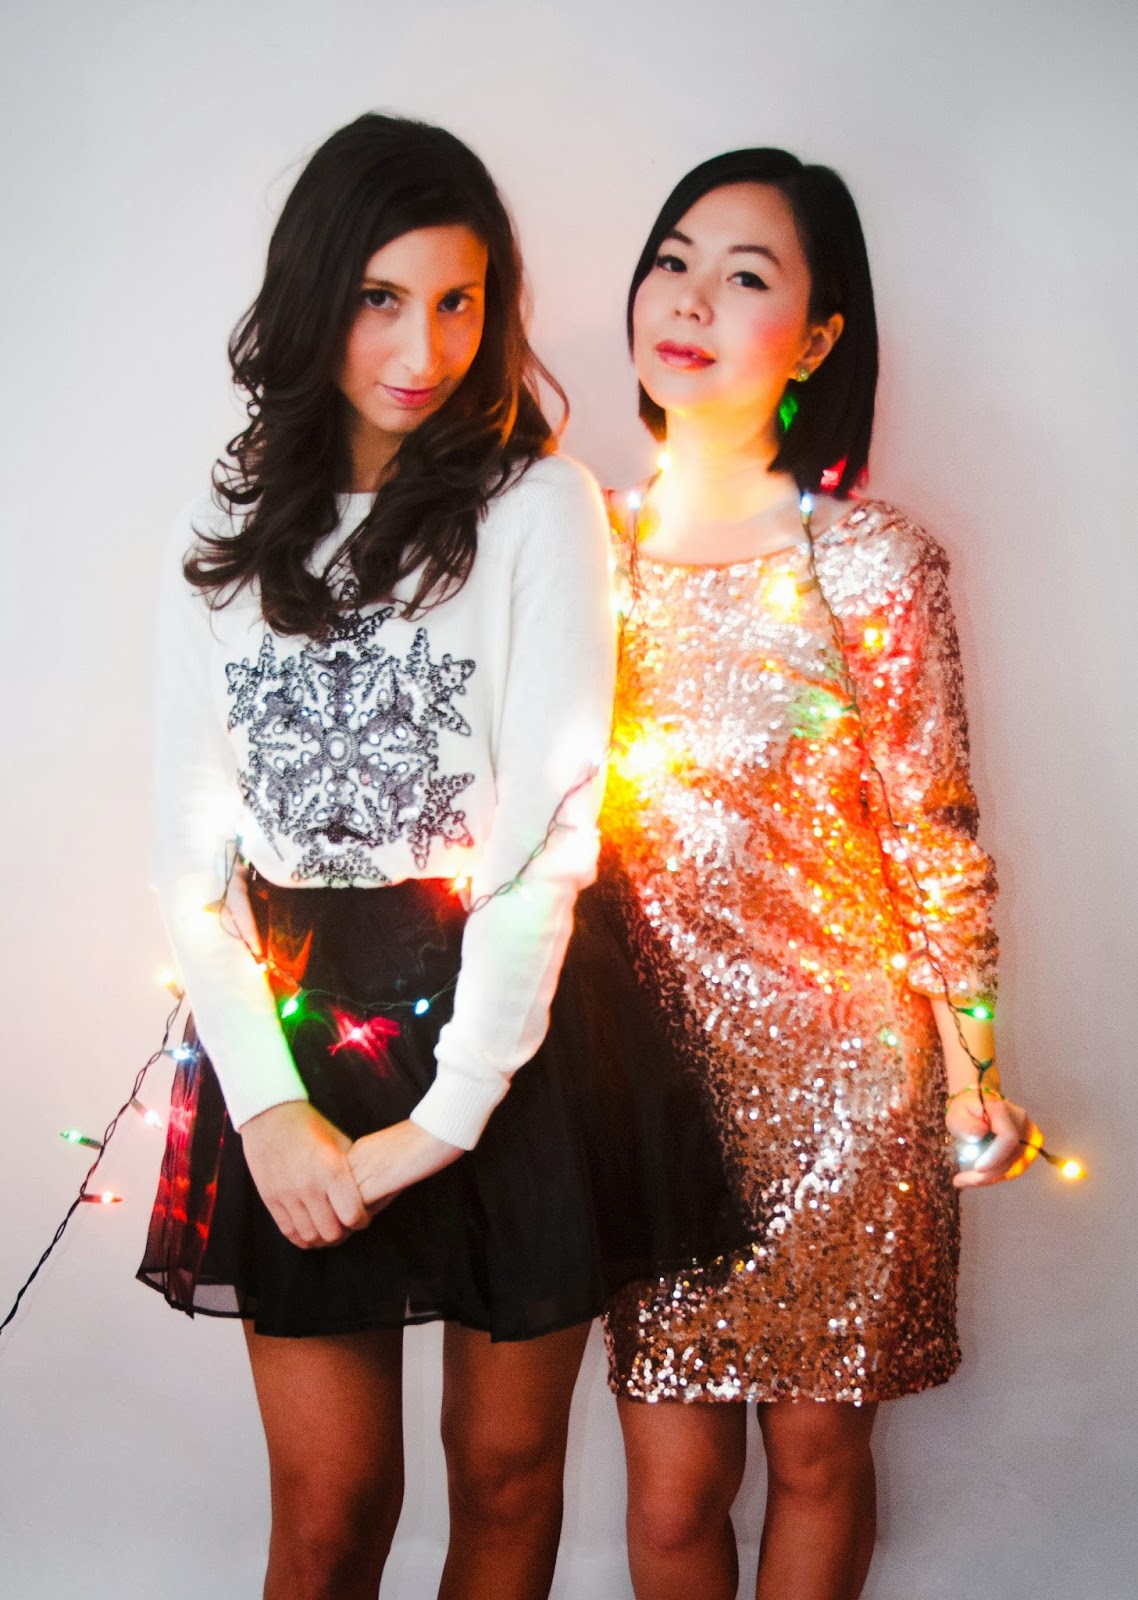 Christmas present gift sequins snowflake sweater holiday cocktail dress black skirt red mary jane nude pump holiday light